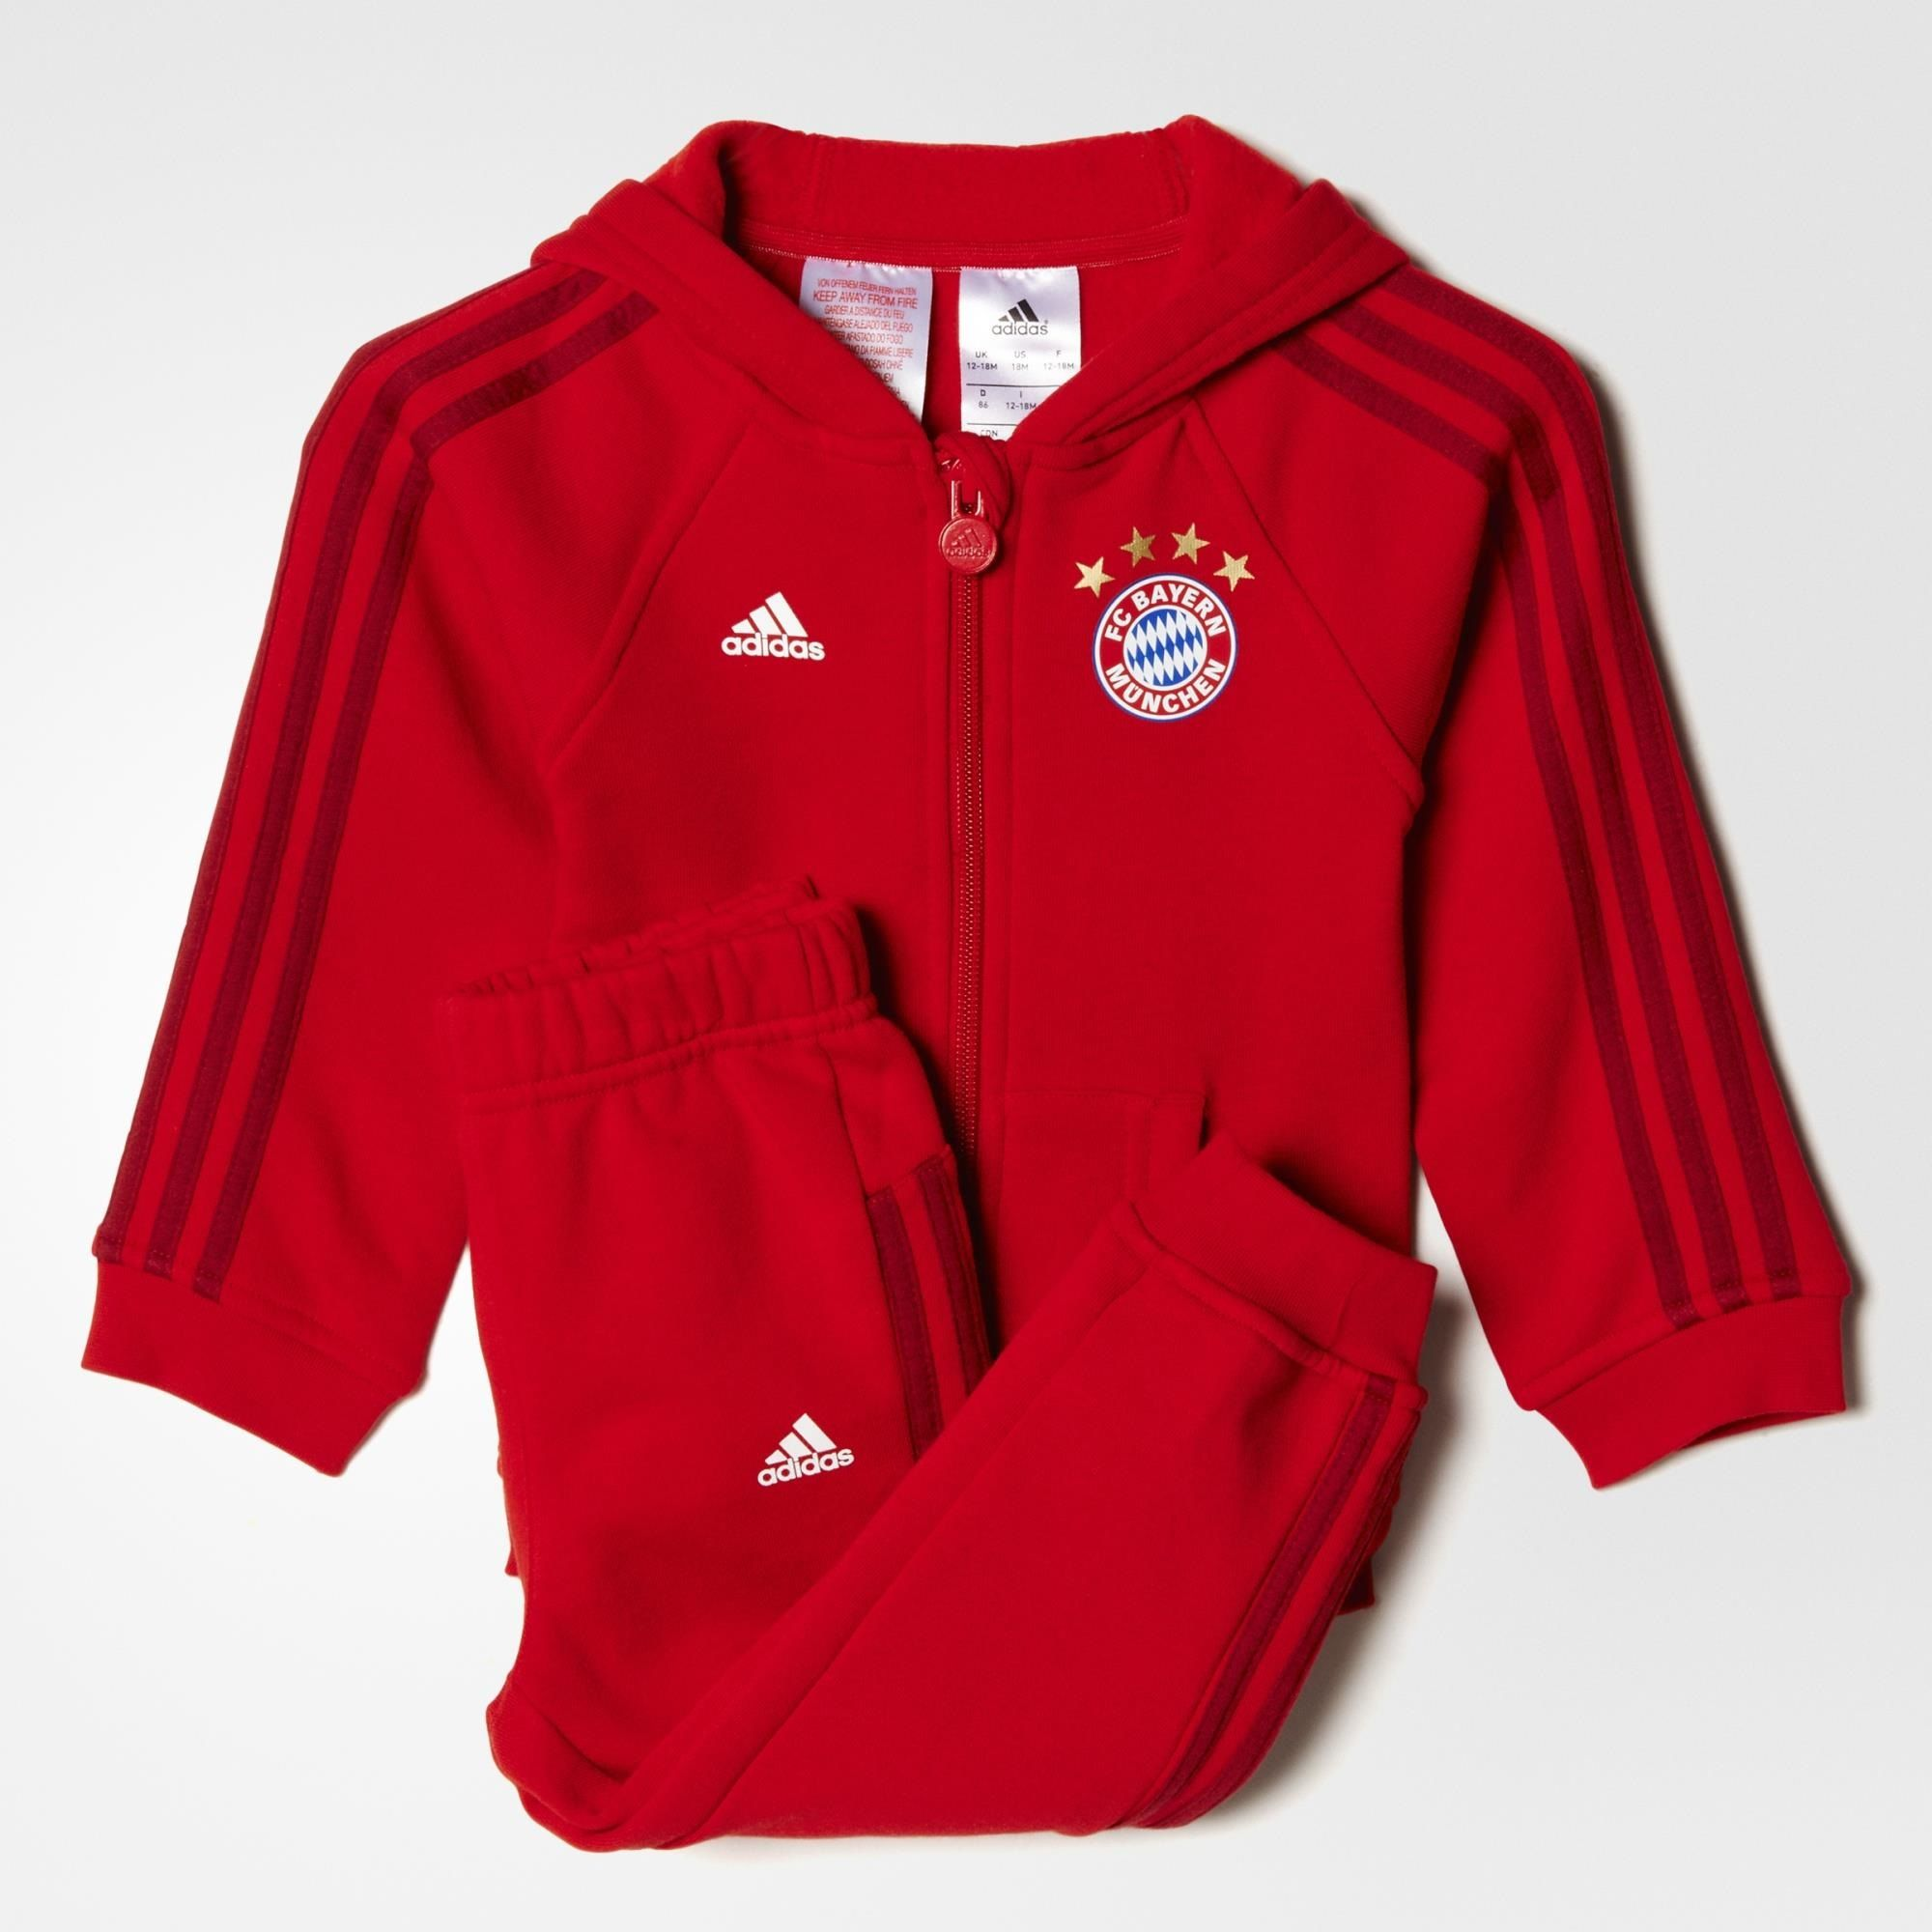 adidas kinder jogginganzug fc bayern m nchen 3 streifen ebay. Black Bedroom Furniture Sets. Home Design Ideas